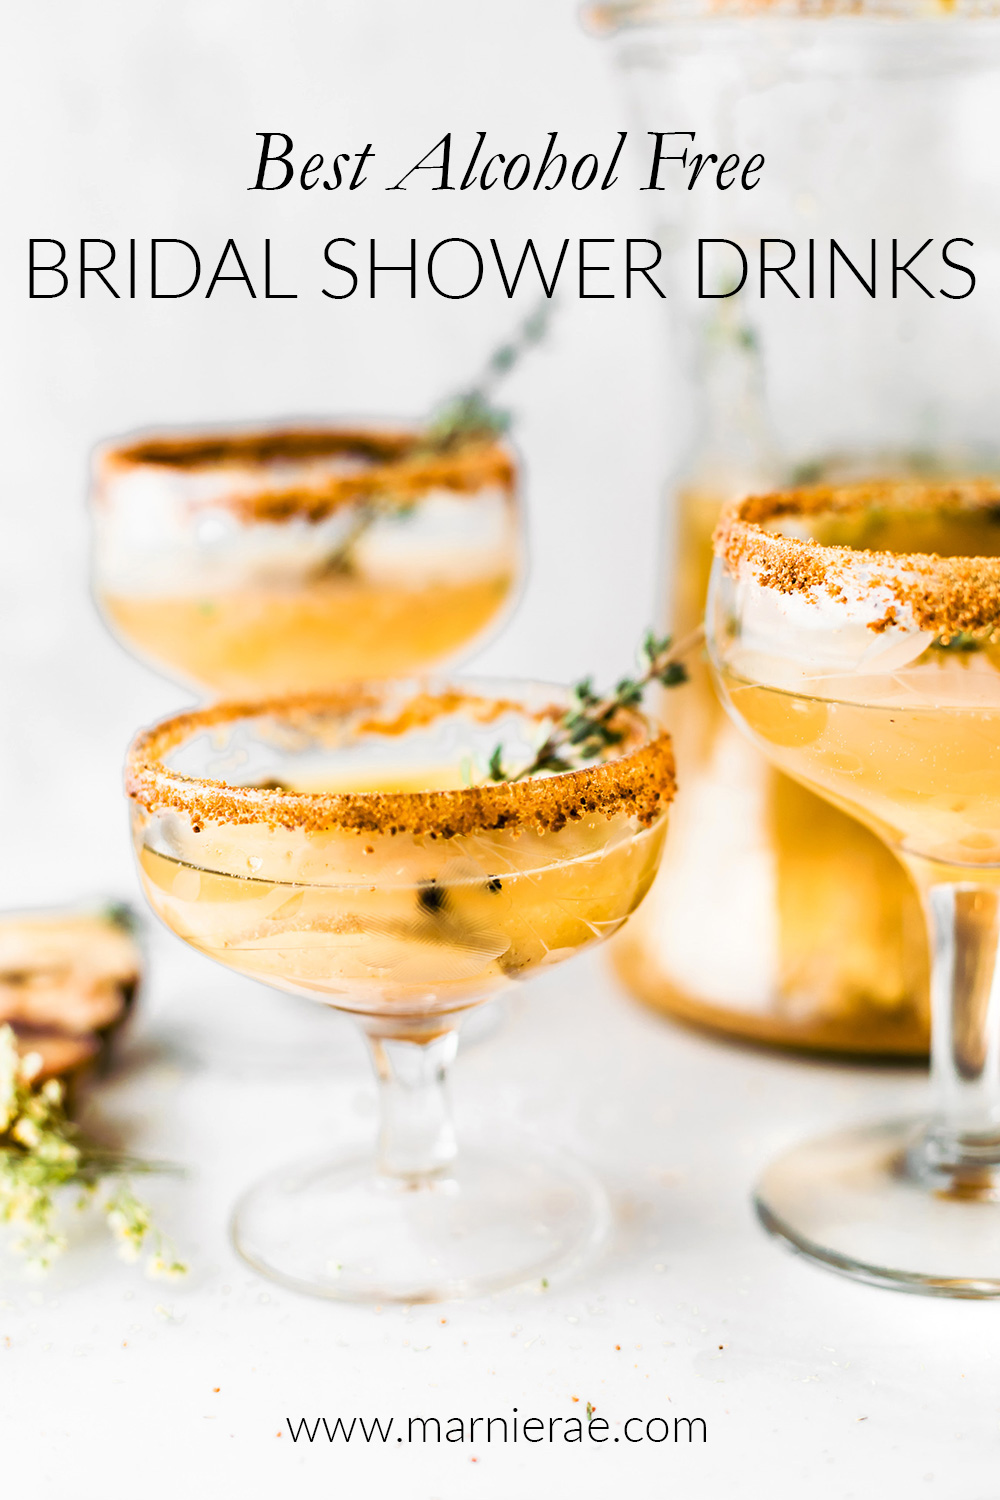 best-alcohol-free-bridal-shower-drinks.jpg